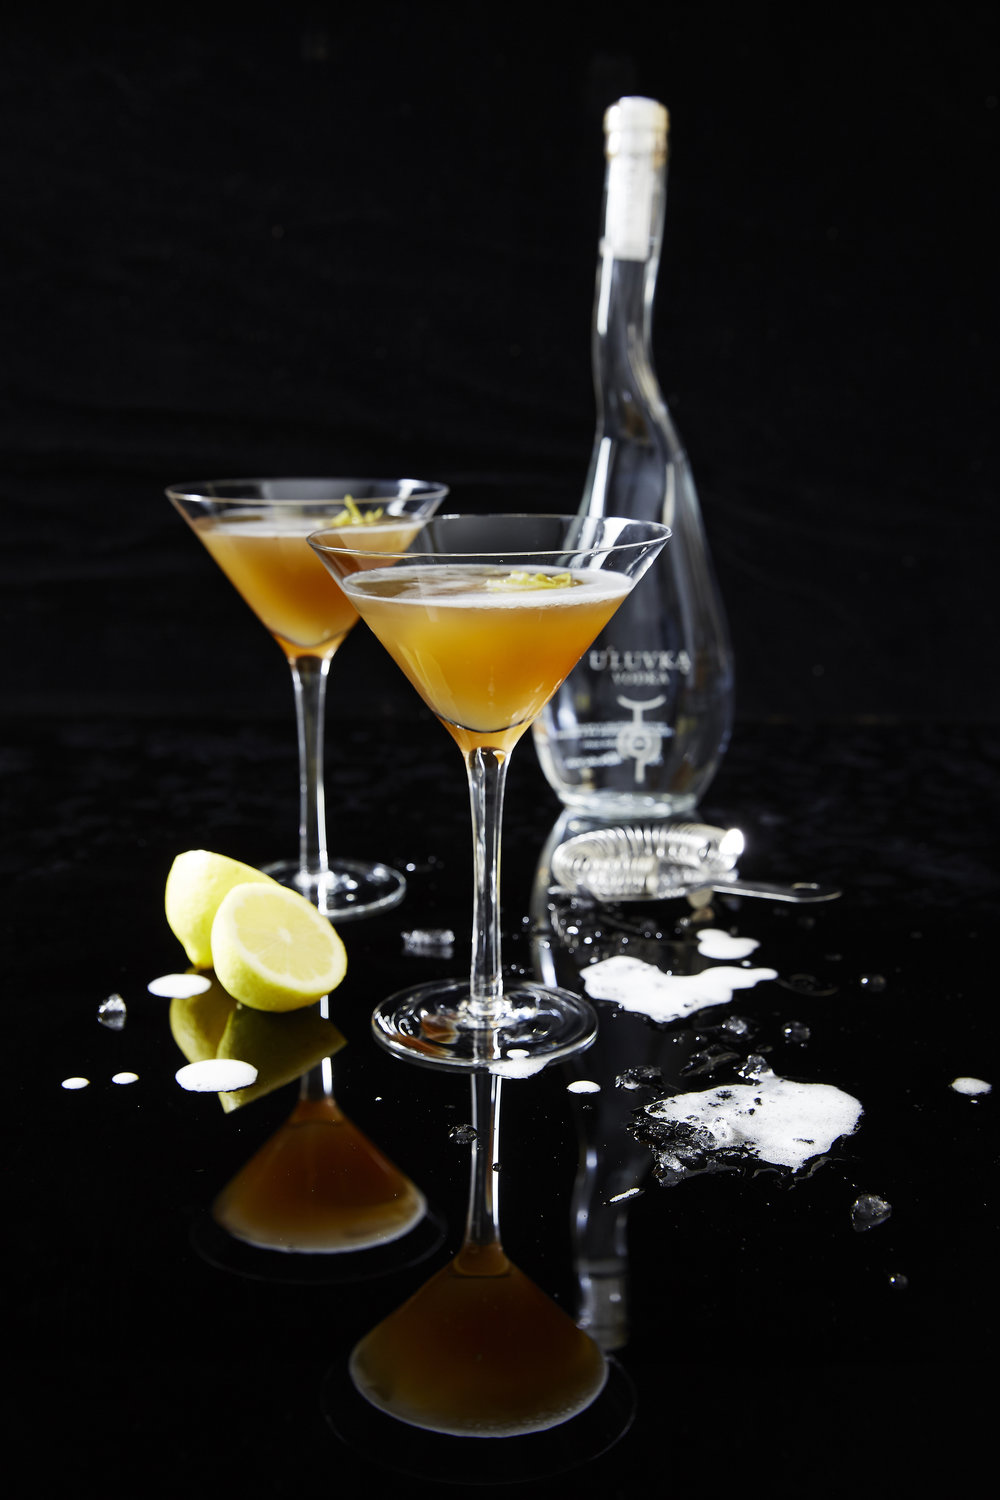 Ulubka_FrenchMartini_Foam.jpg